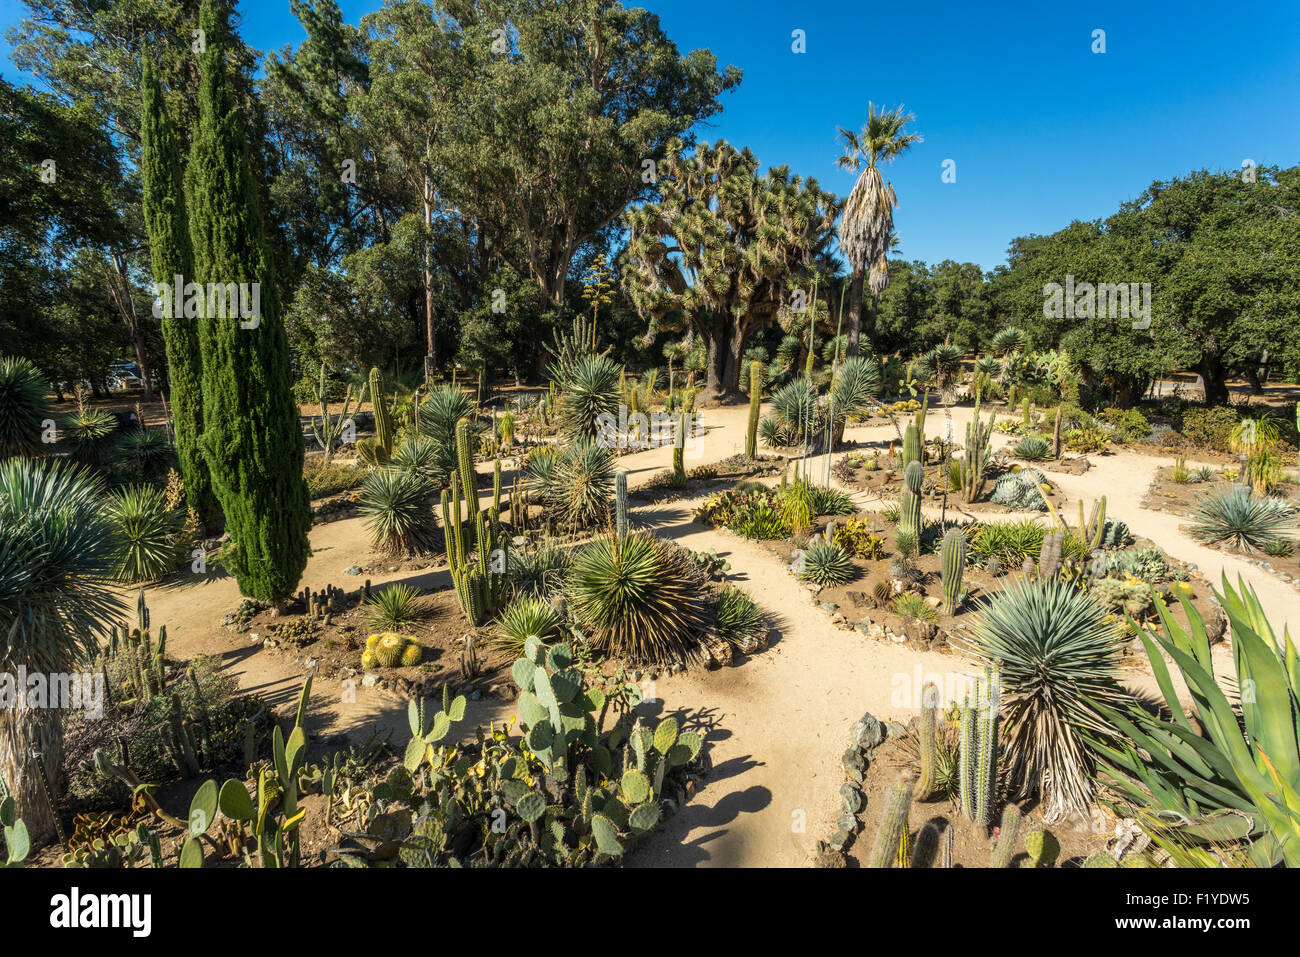 Stock Photo   The Arizona Cactus Garden, (or Refered To As The Stanford  Cactus Garden,) Is A Botanical Garden That Specializes In Cacti And  Succulents